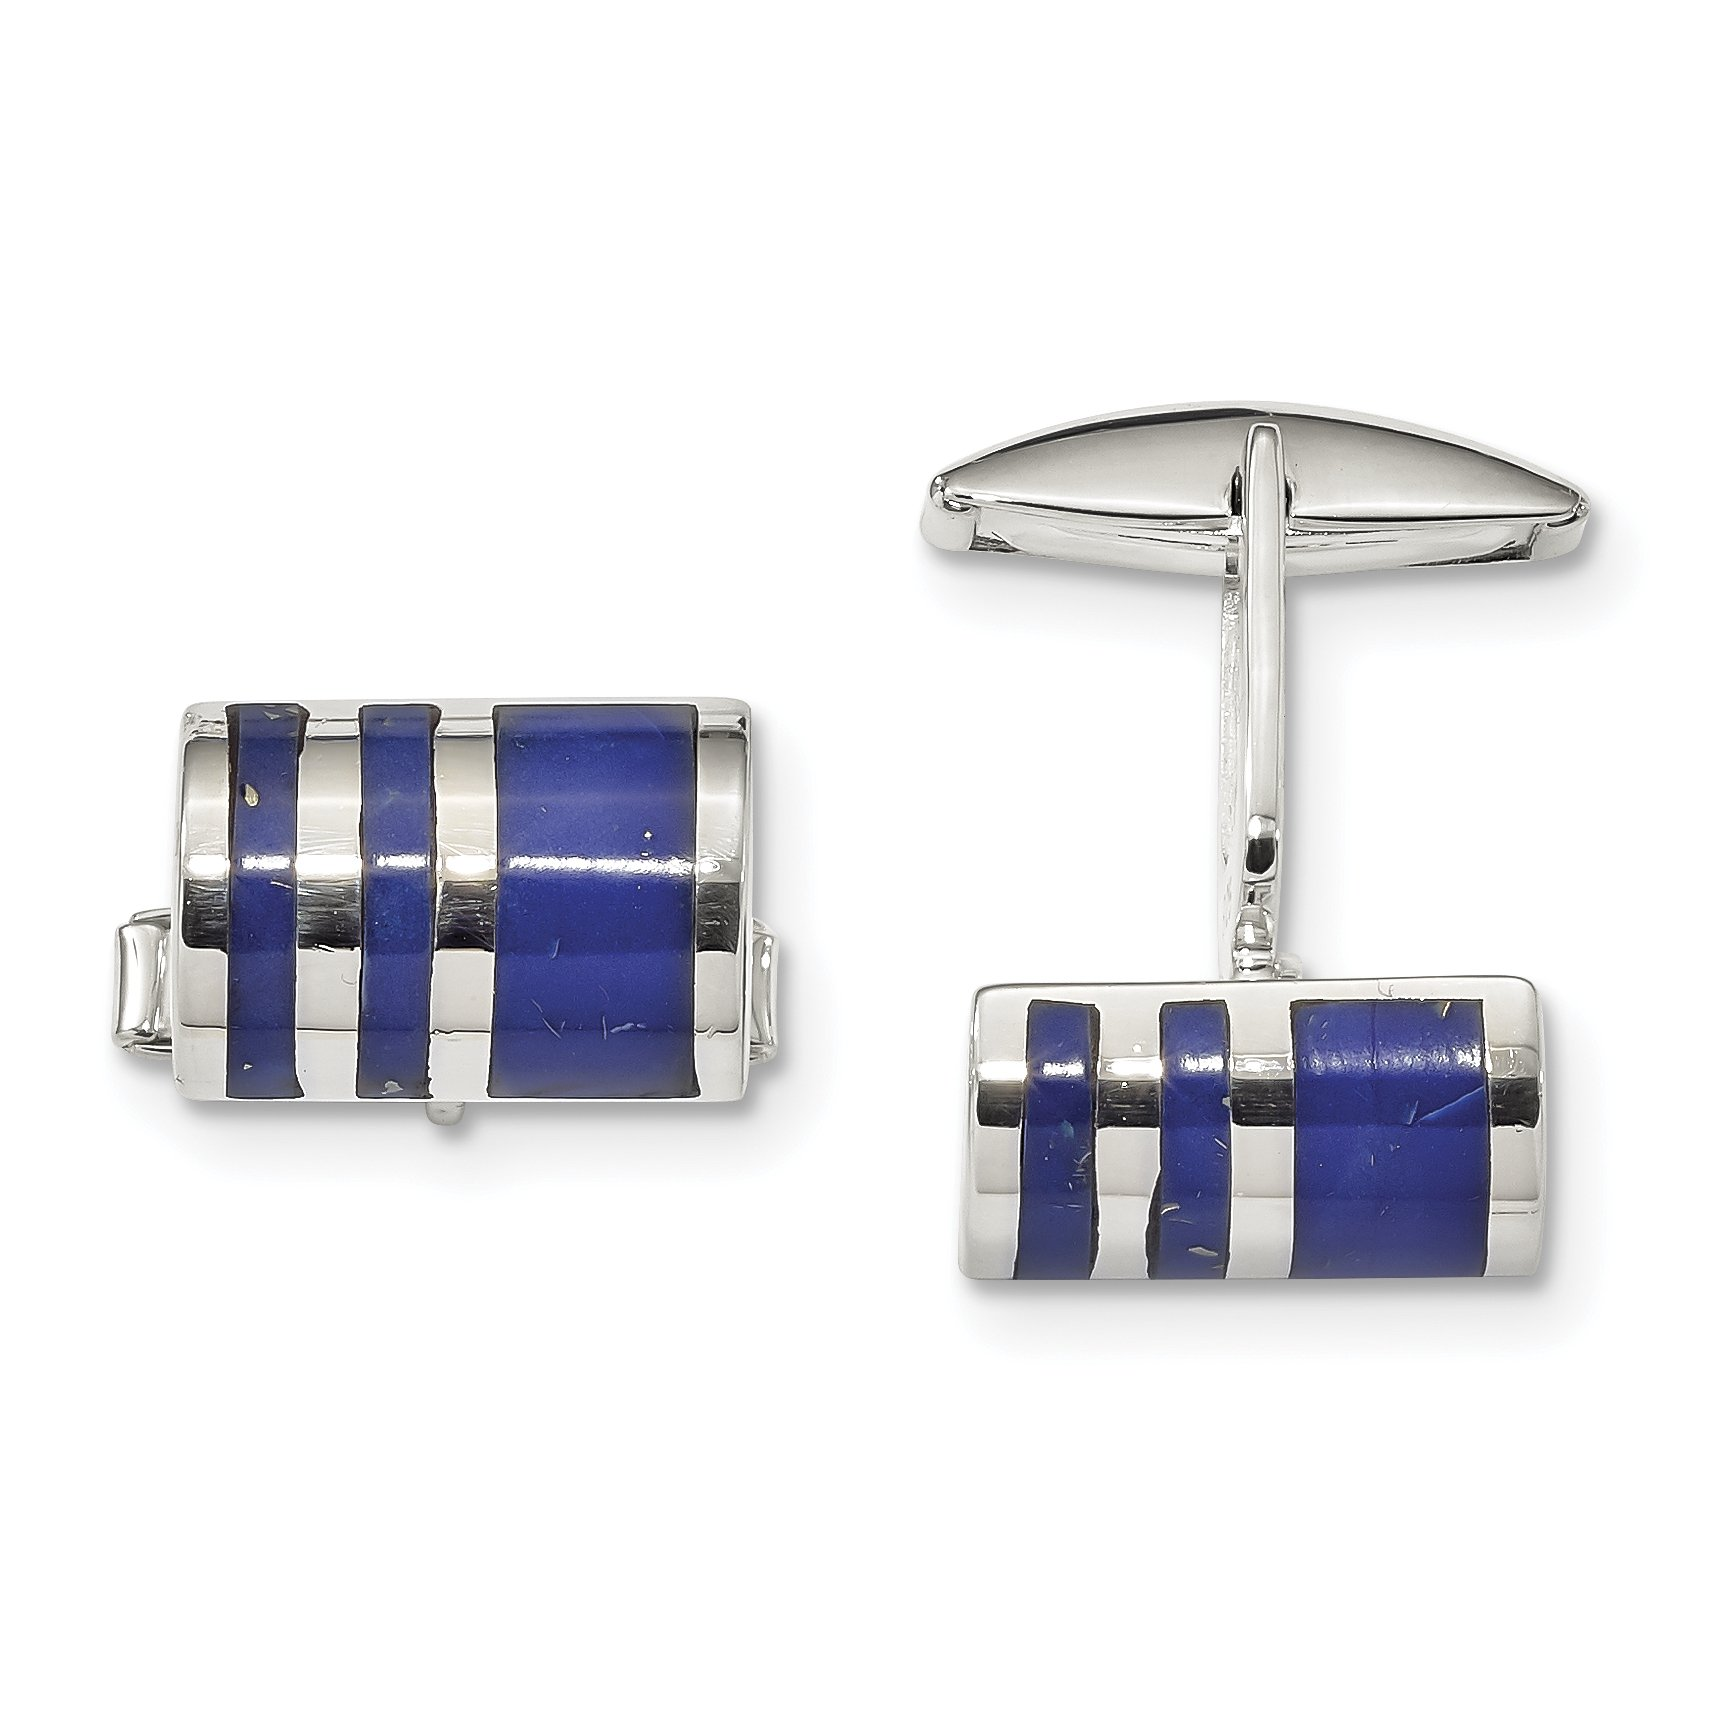 ICE CARATS 925 Sterling Silver Lapis Cuff Links Mens Cufflinks Link Fine Jewelry Dad Mens Gift Set